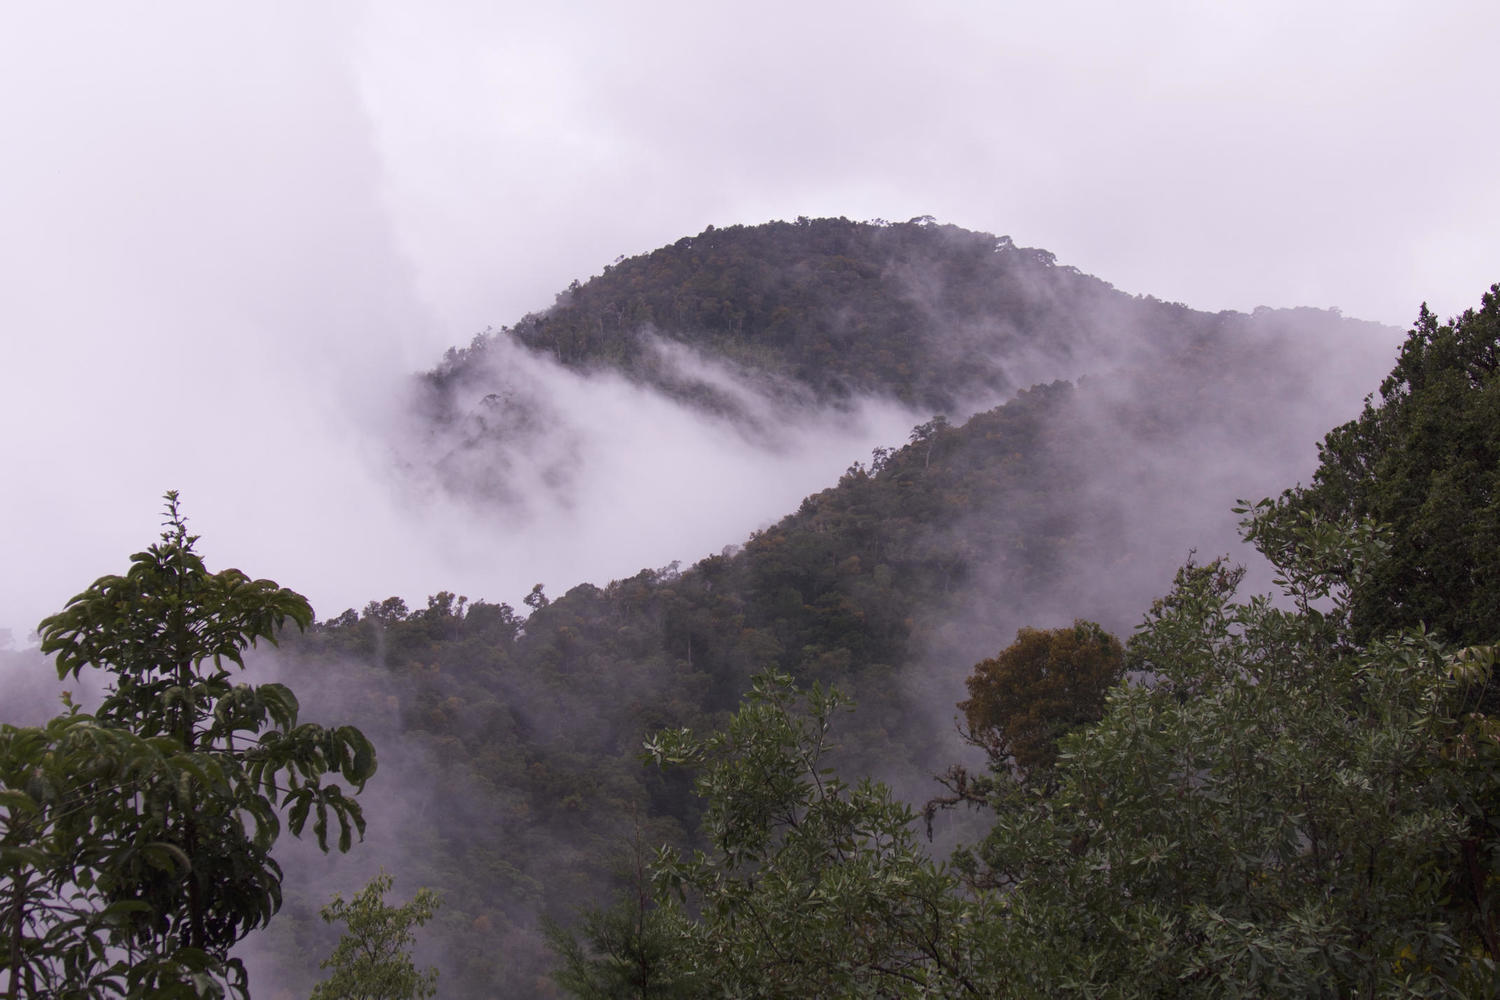 Drifting cloud over the forests of San Gerardo de Dota